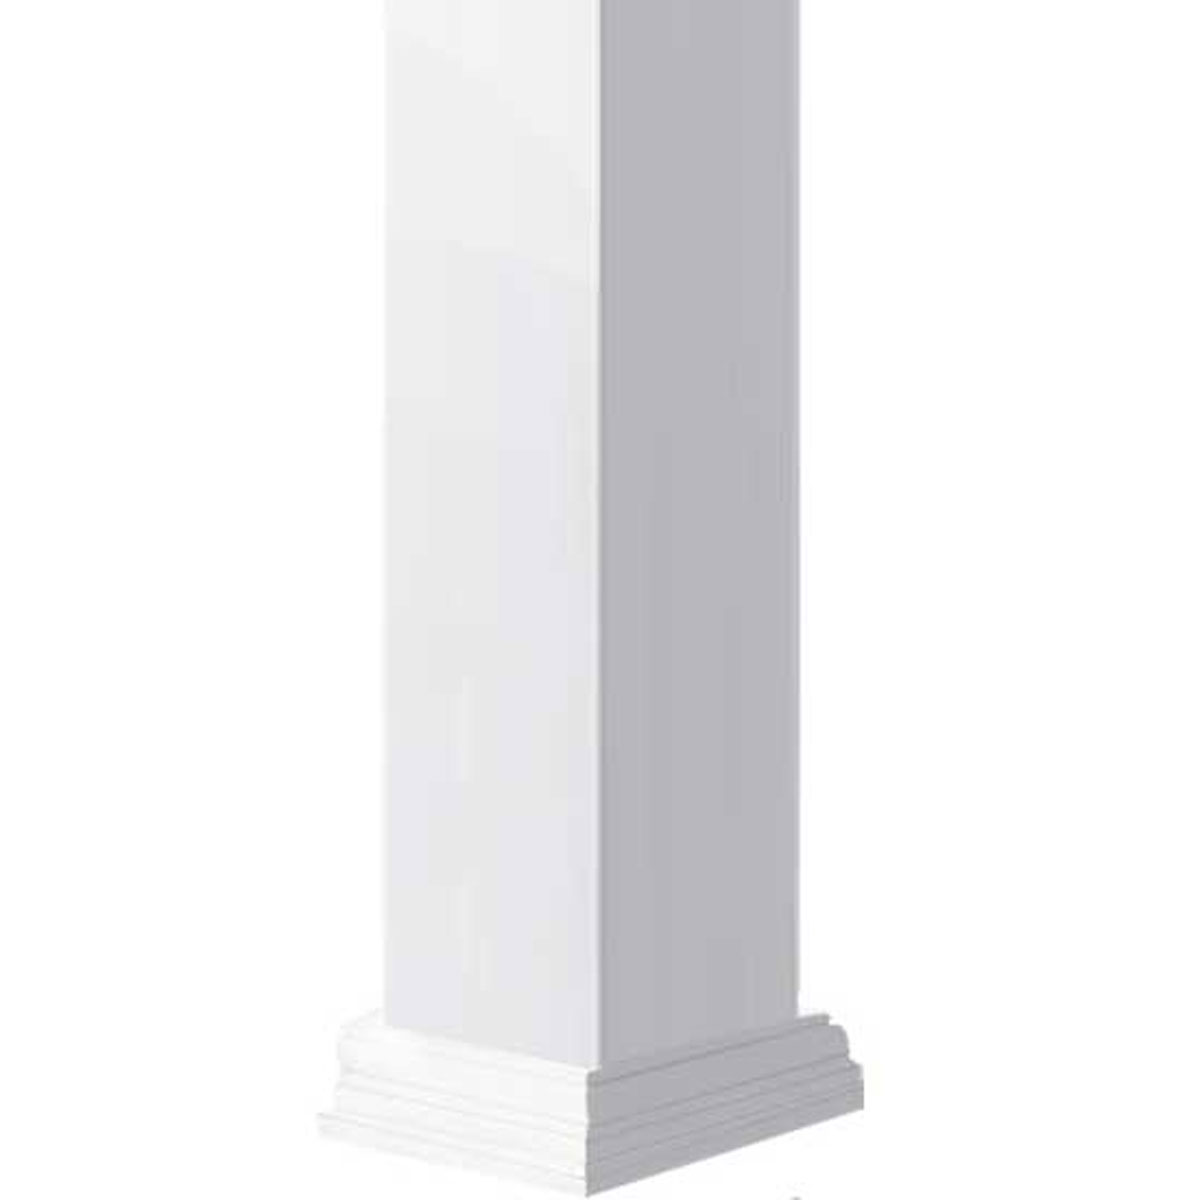 Non-Tapered Fluted Endura-Craft Craftsman Column Wrap 10 Square Shaft x 6 Overall Height Standard Base /& Capital Cellular PVC